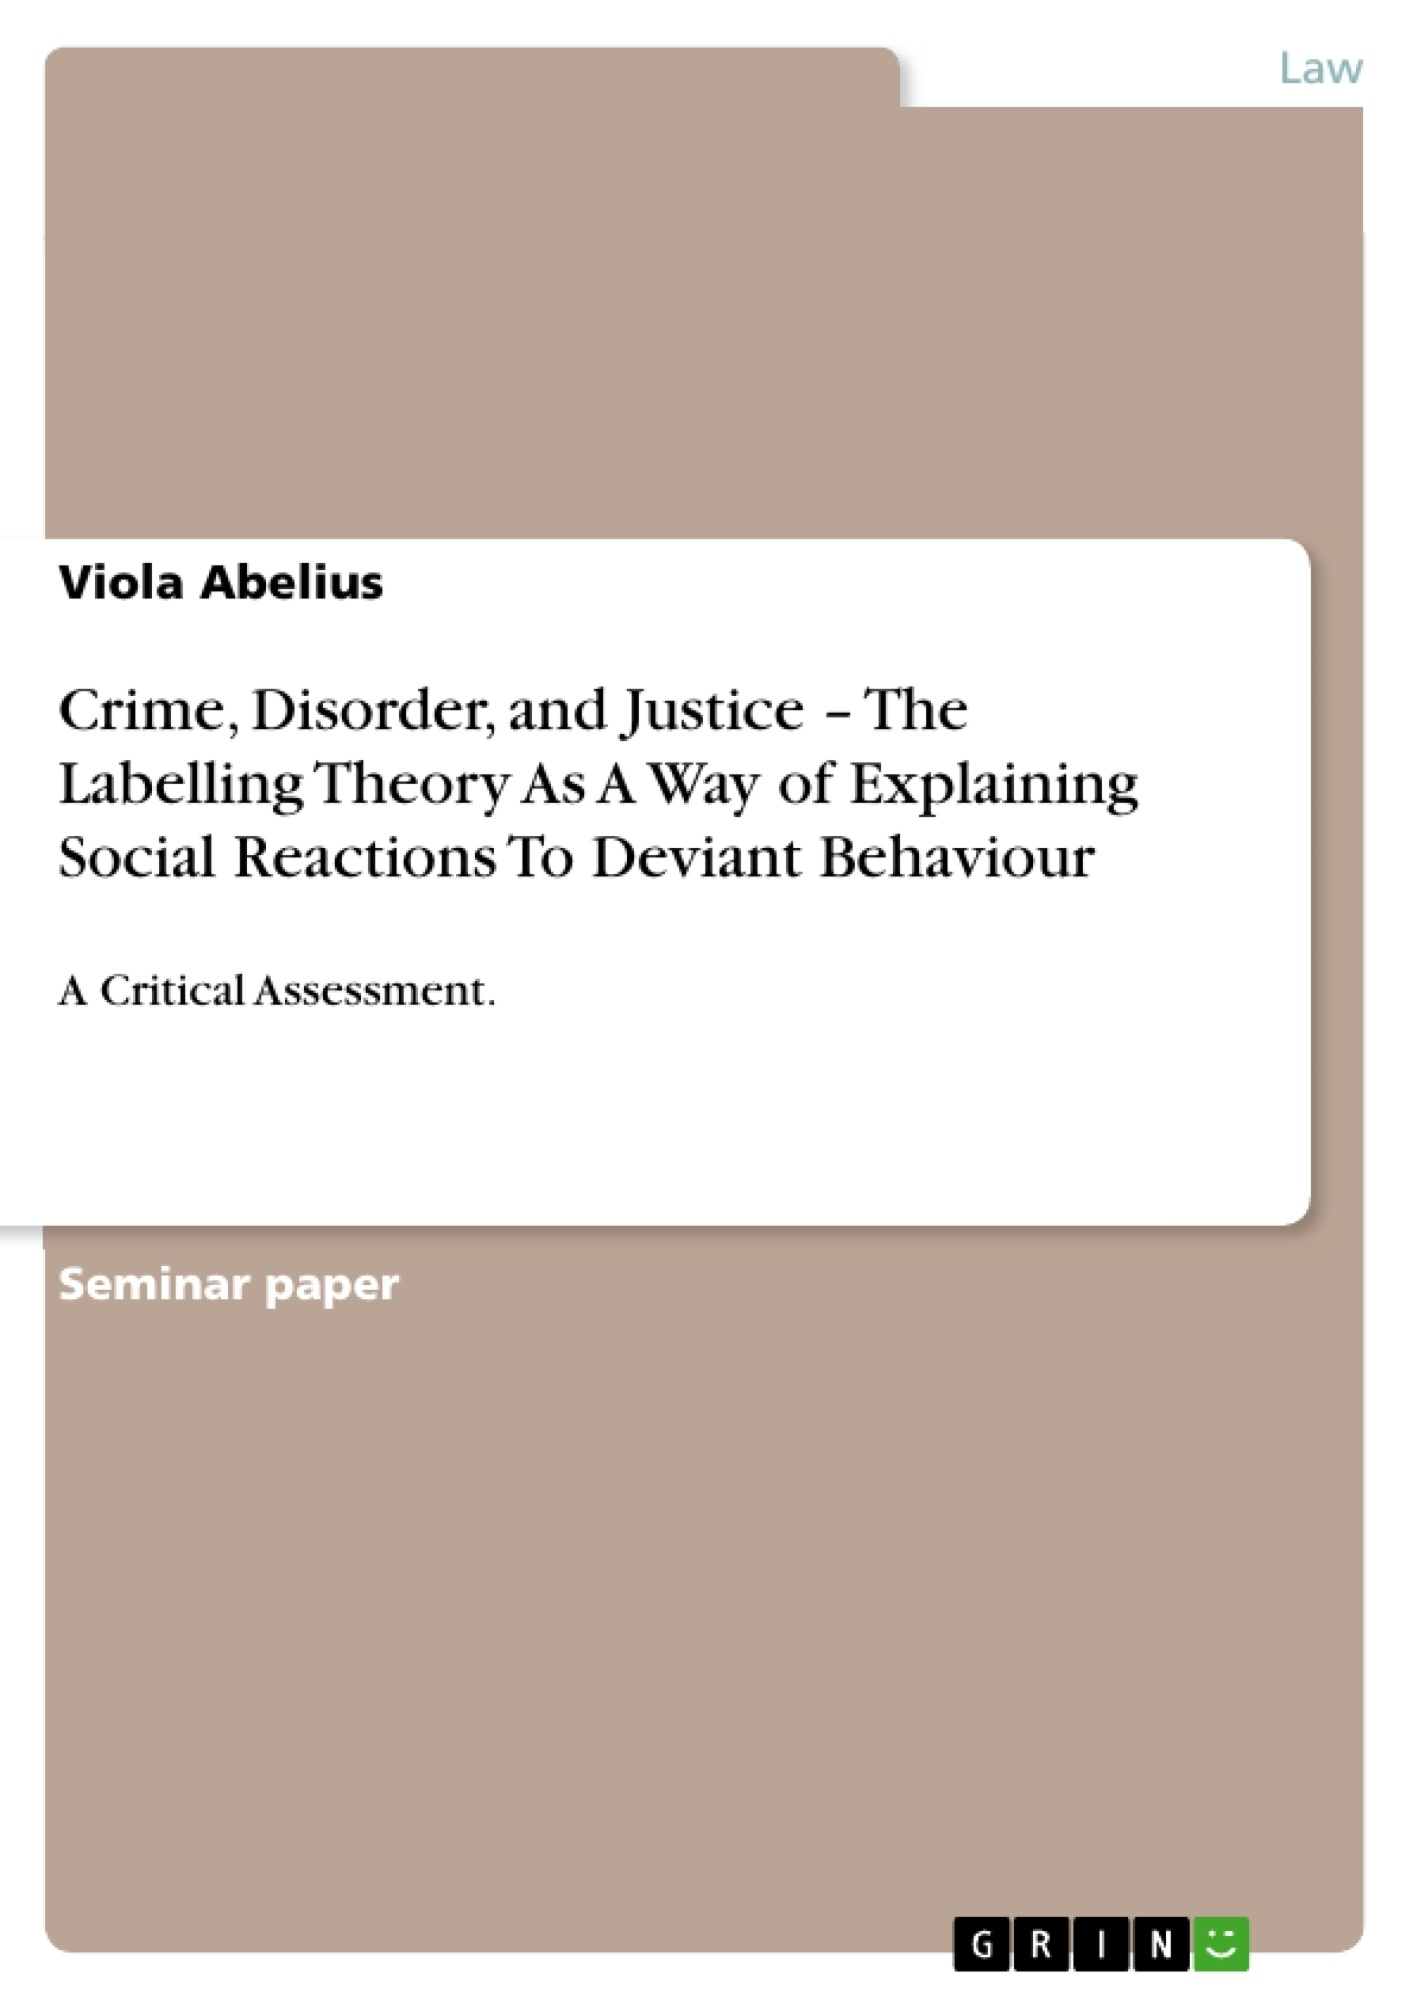 Title: Crime, Disorder, and Justice – The Labelling Theory As A Way of Explaining Social Reactions To Deviant Behaviour